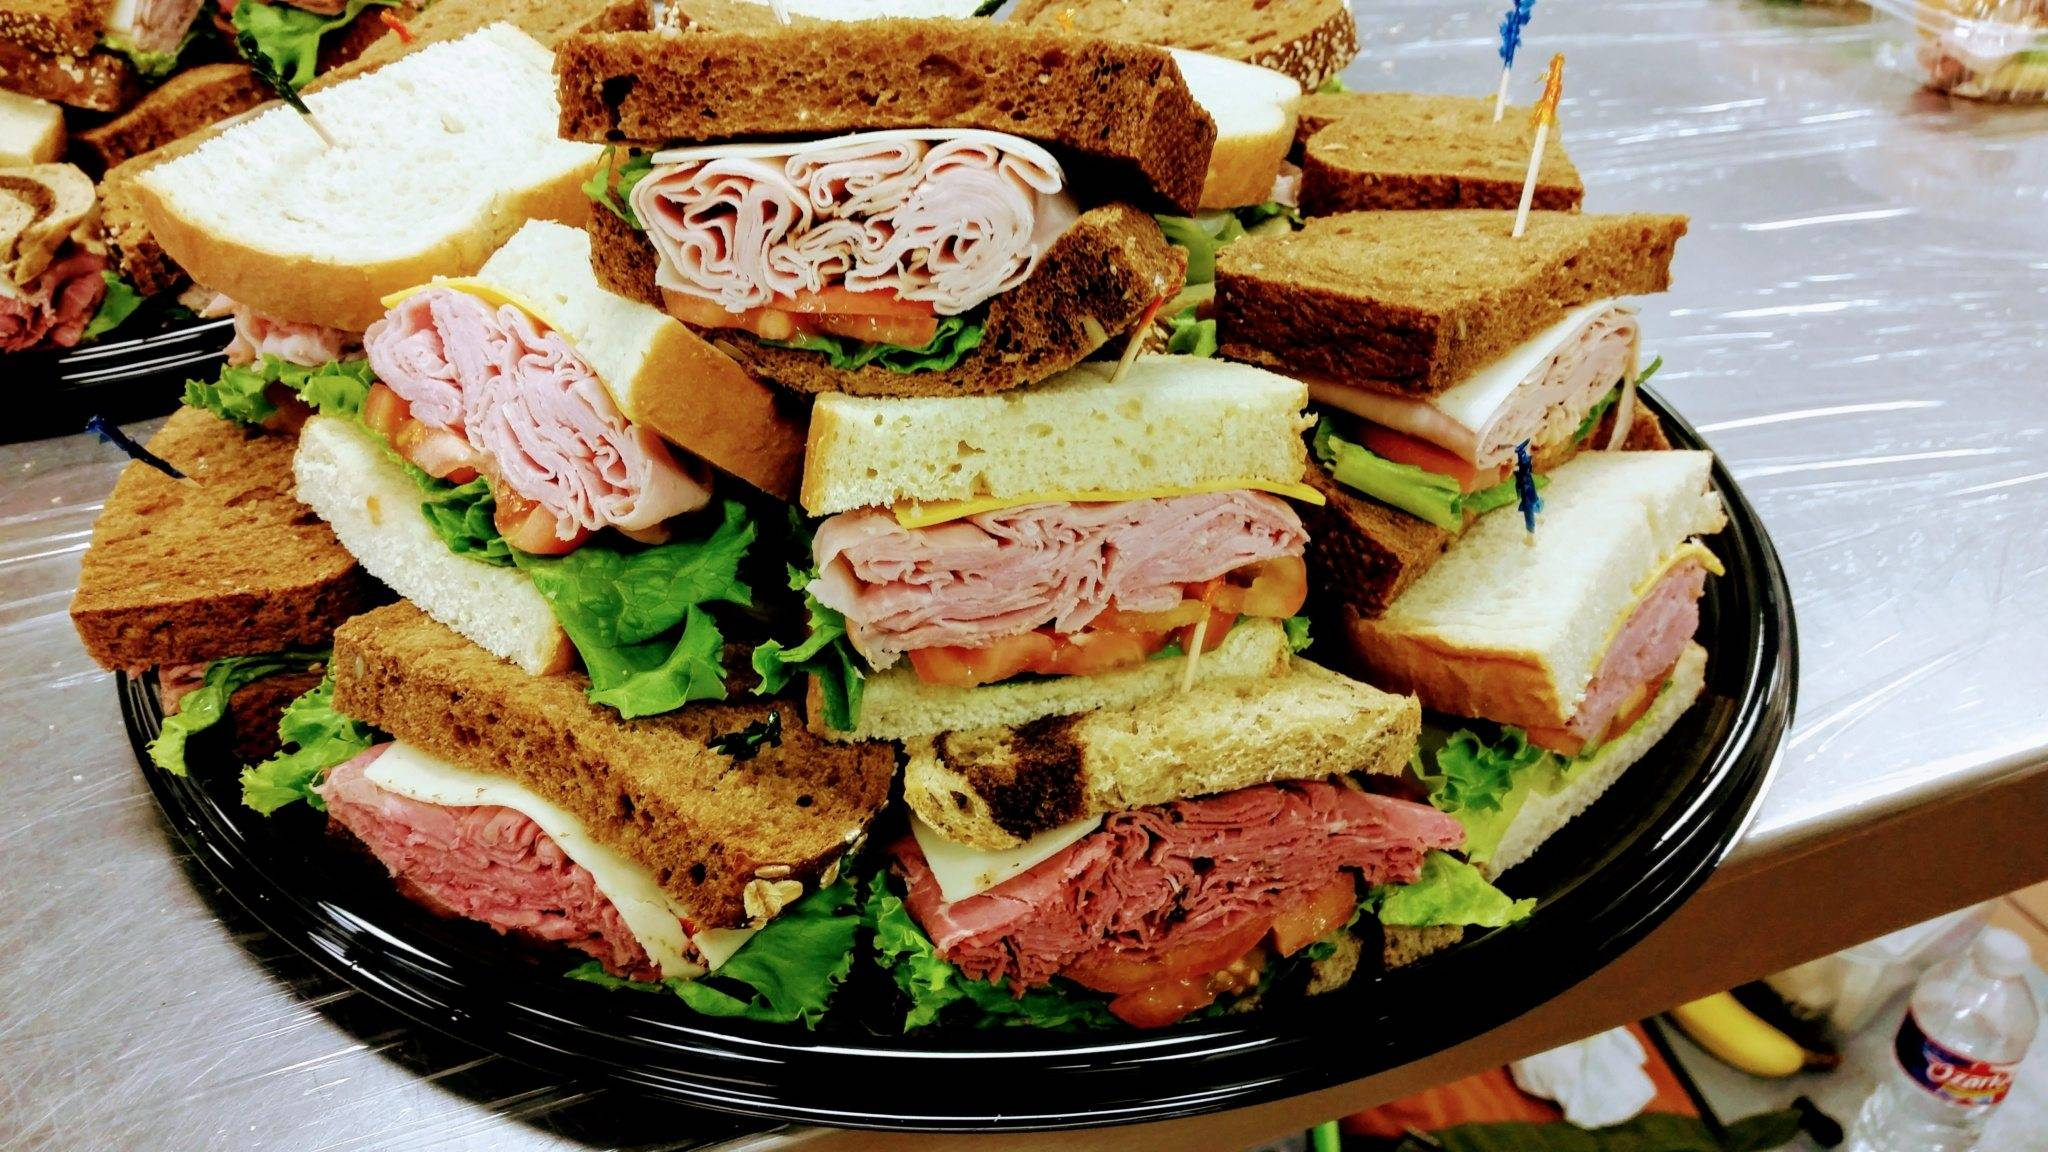 Platter filled with sandwiches with a variety of meats, cheeses, and breads.